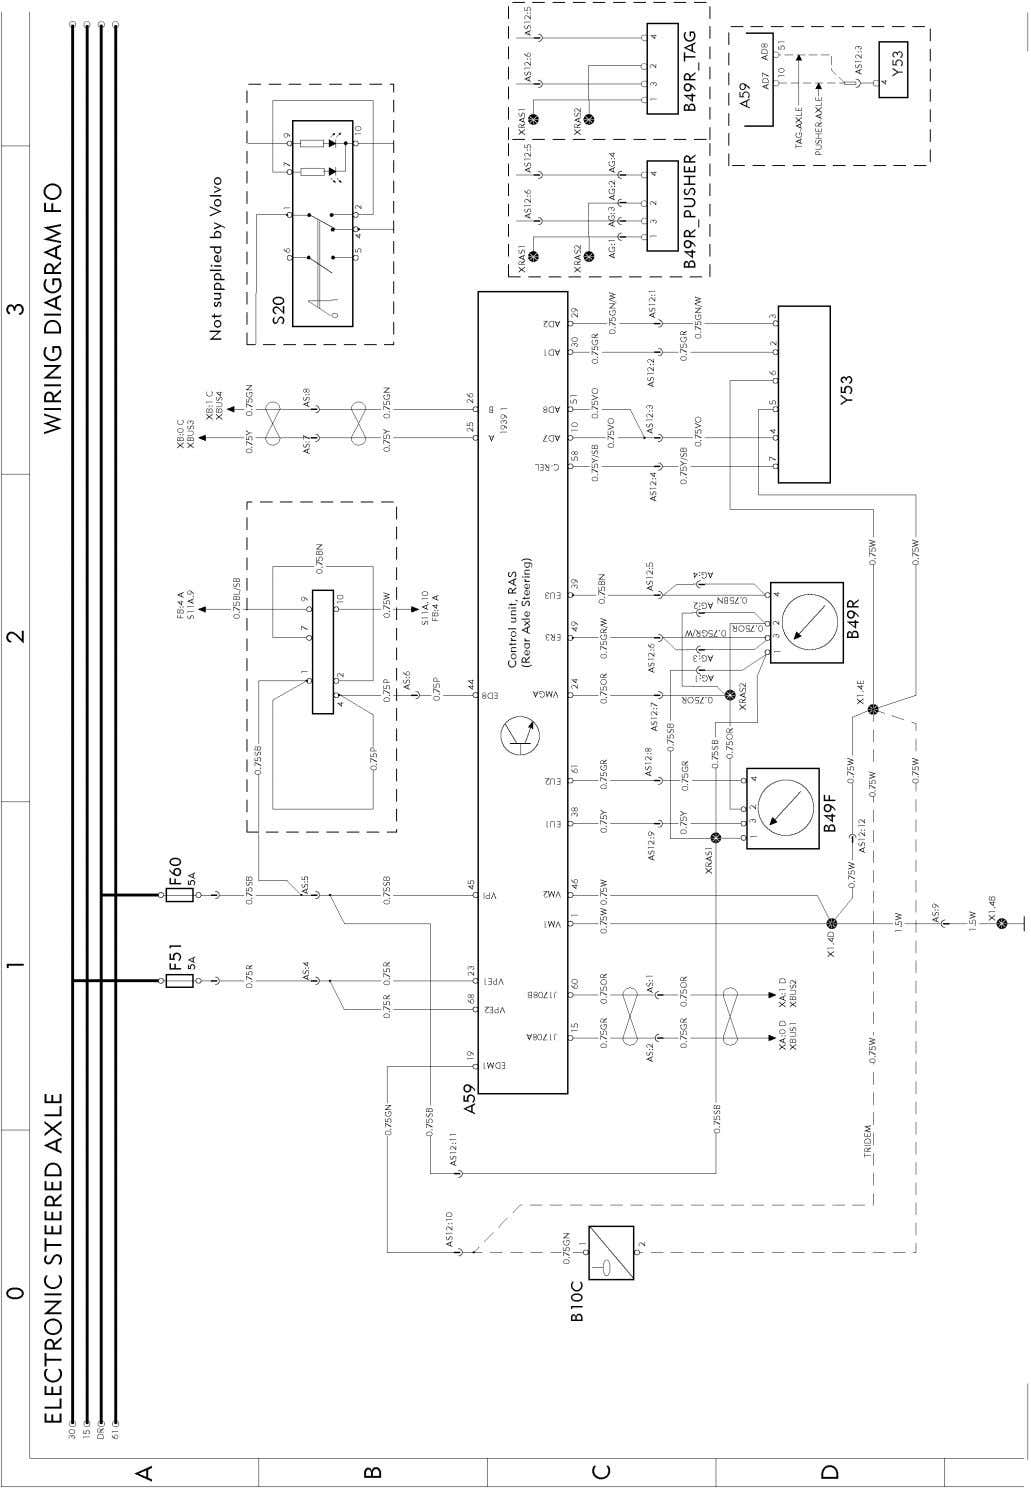 T3028875 Wiring diagram Page 55 (298)